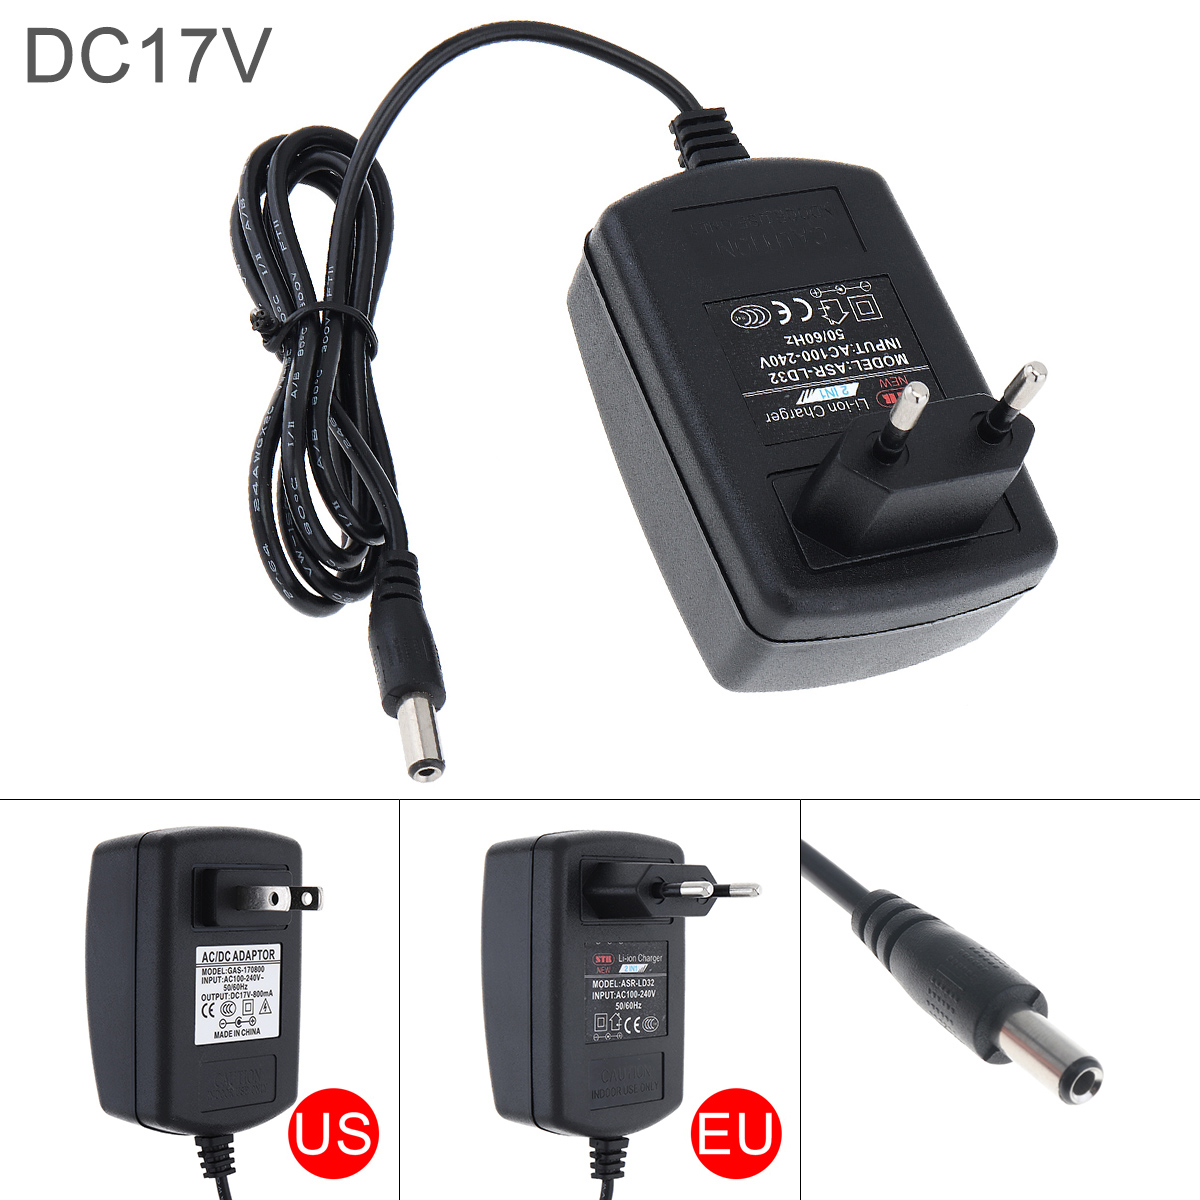 DC 16.8-17V Portable Lithium Battery Rechargeable Charger Support 100-240V Power Source For Lithium Electrical Drill Screwdriver